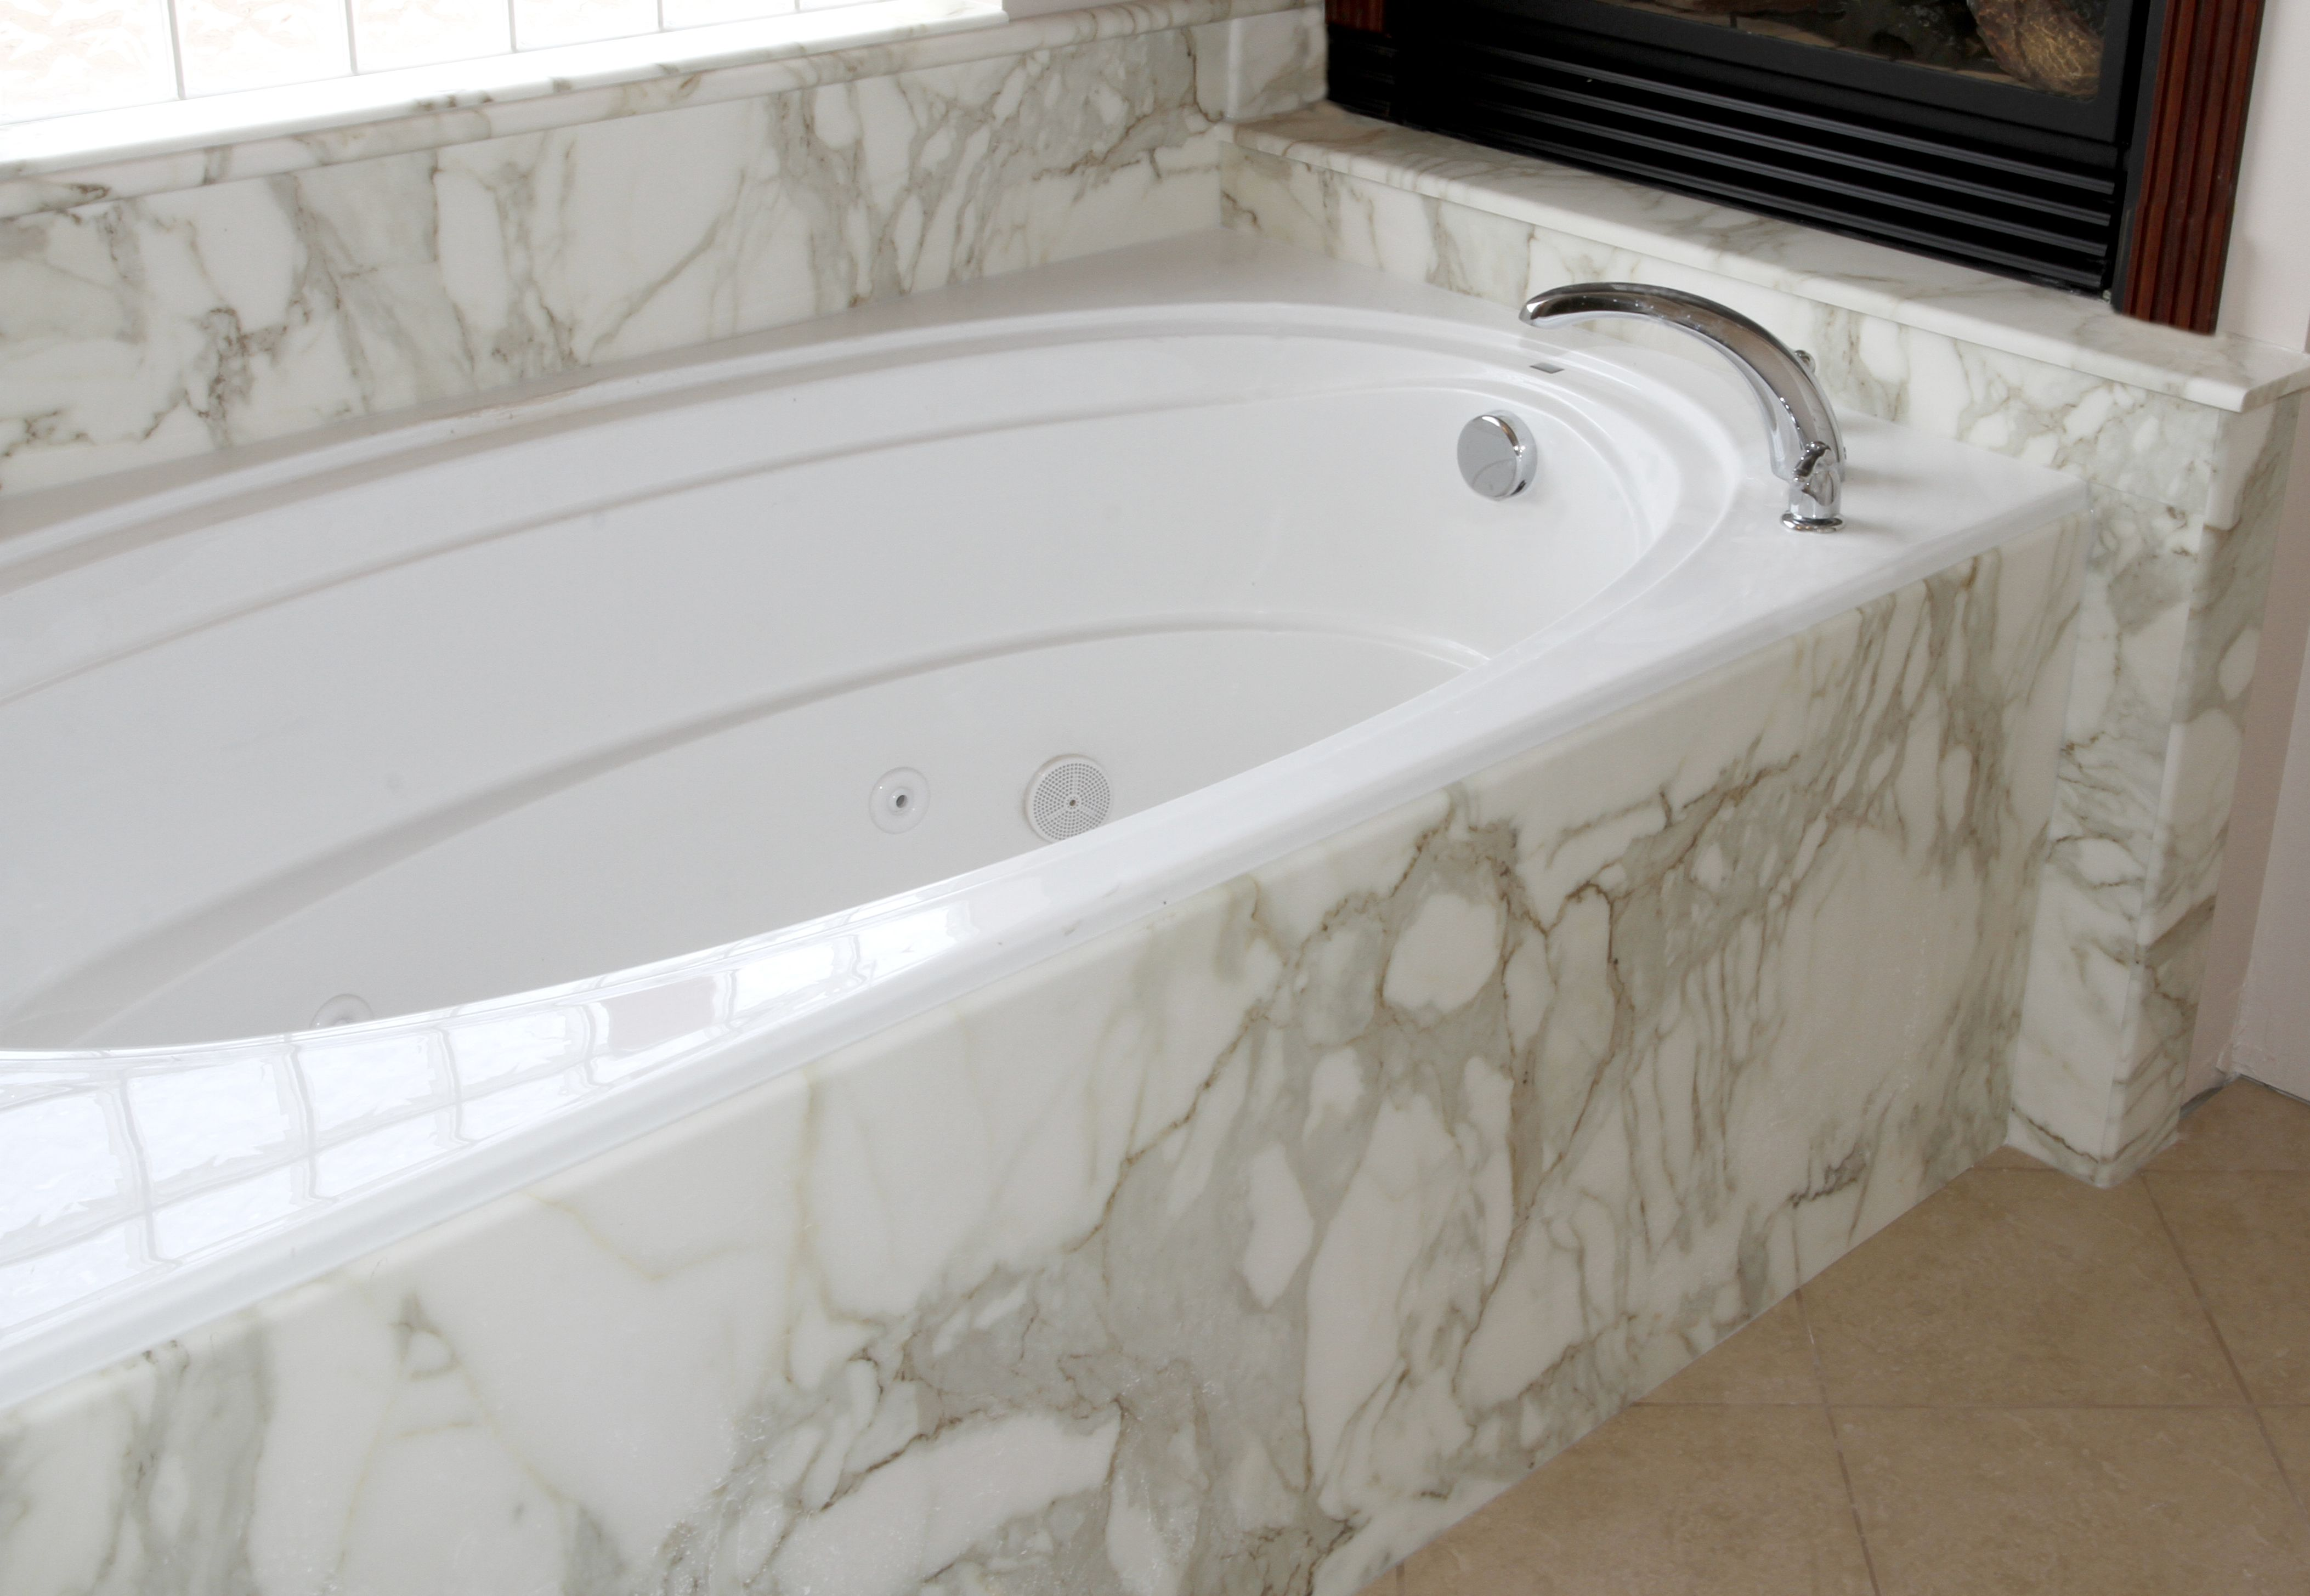 Pin By Marble Works Inc On Bath Tubs Marble Tub Cultured Marble Tub Surround